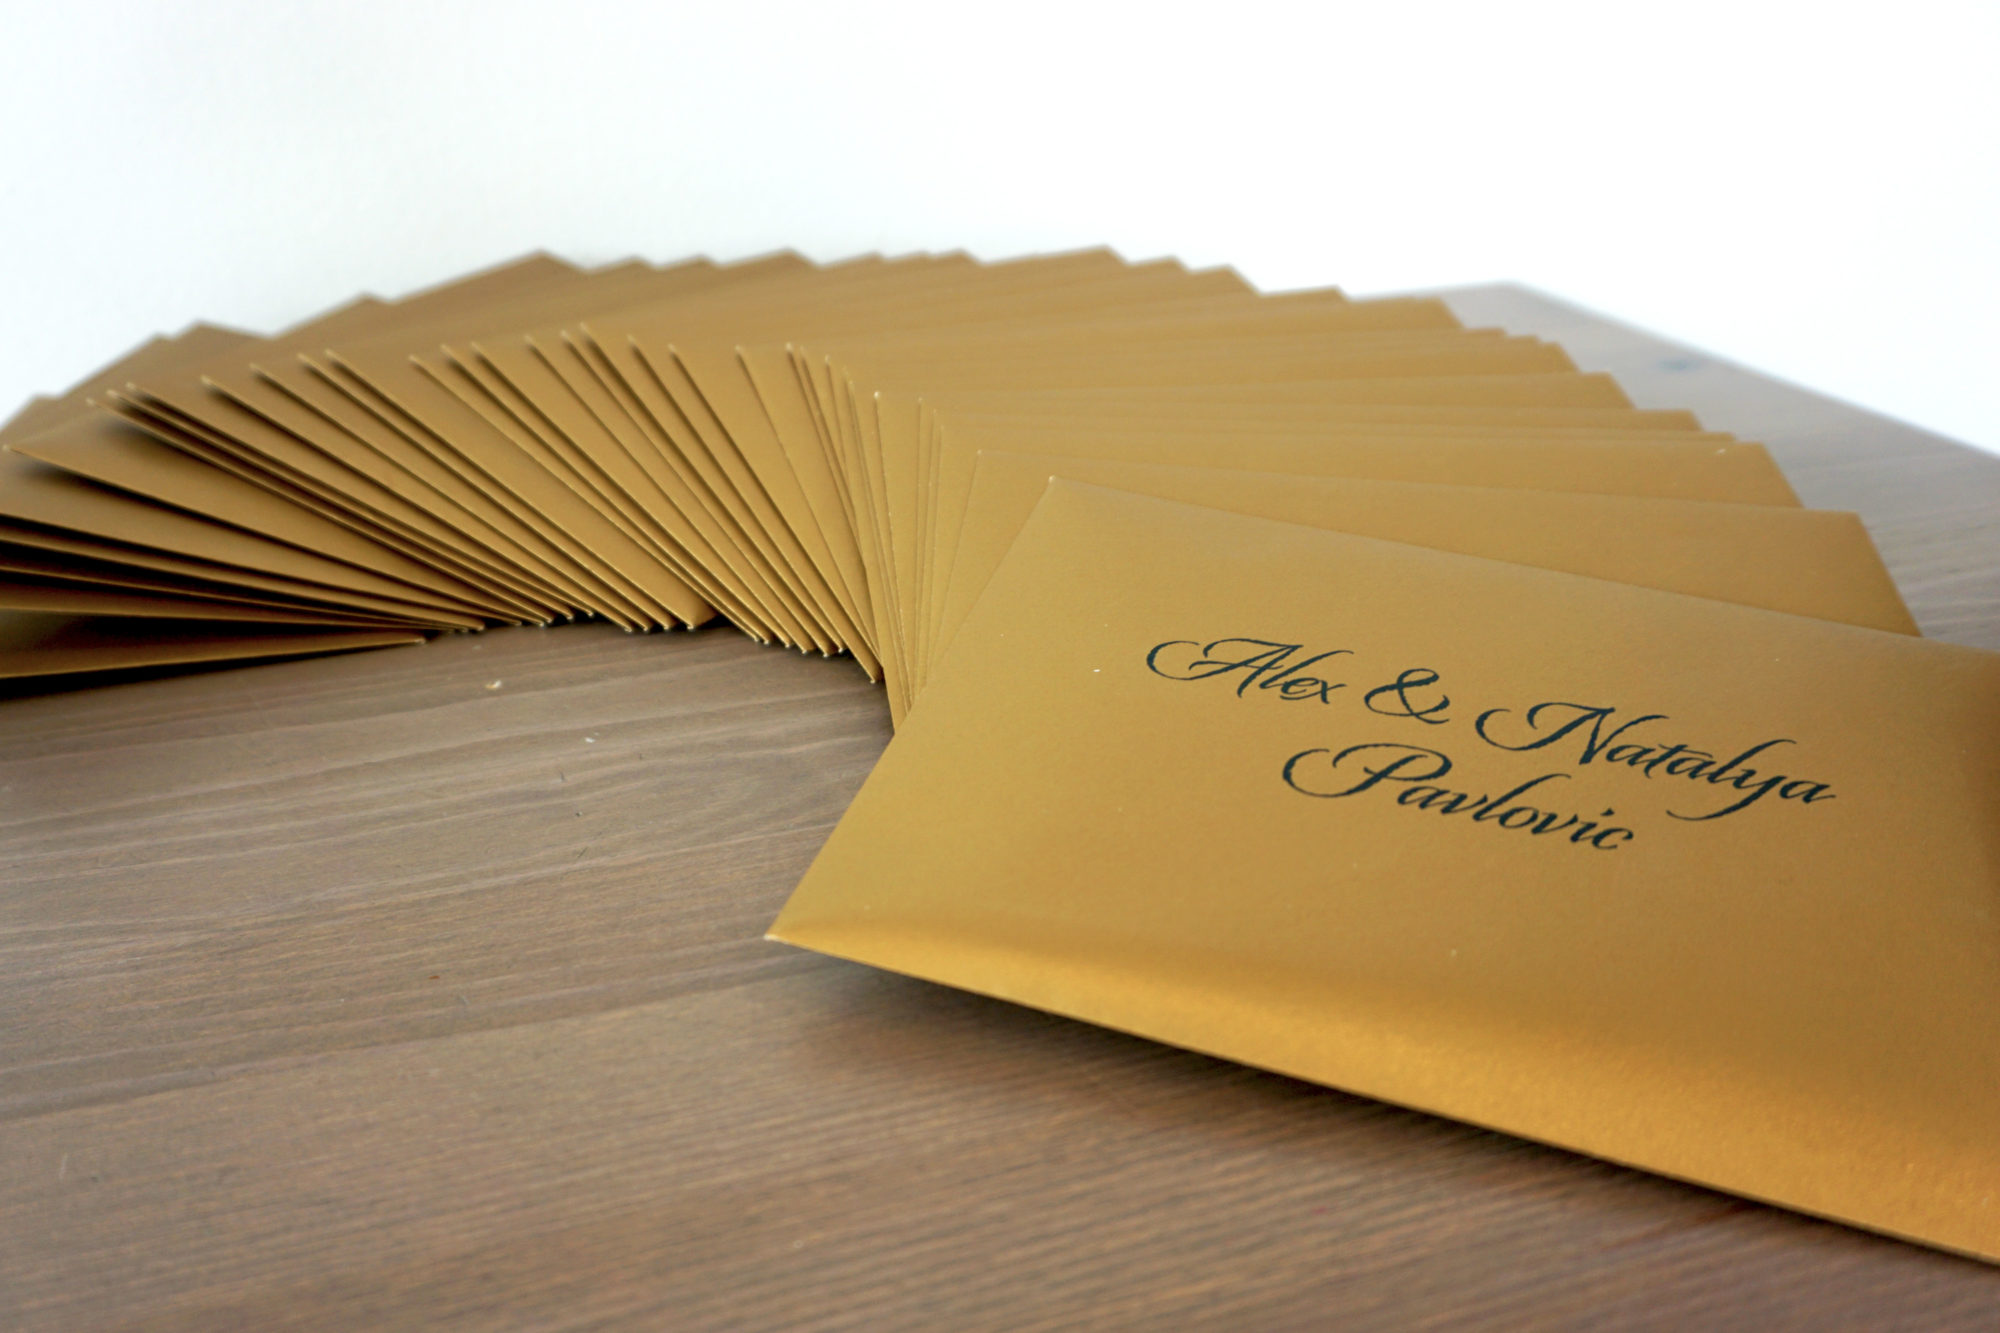 The Kennedy Center invitations